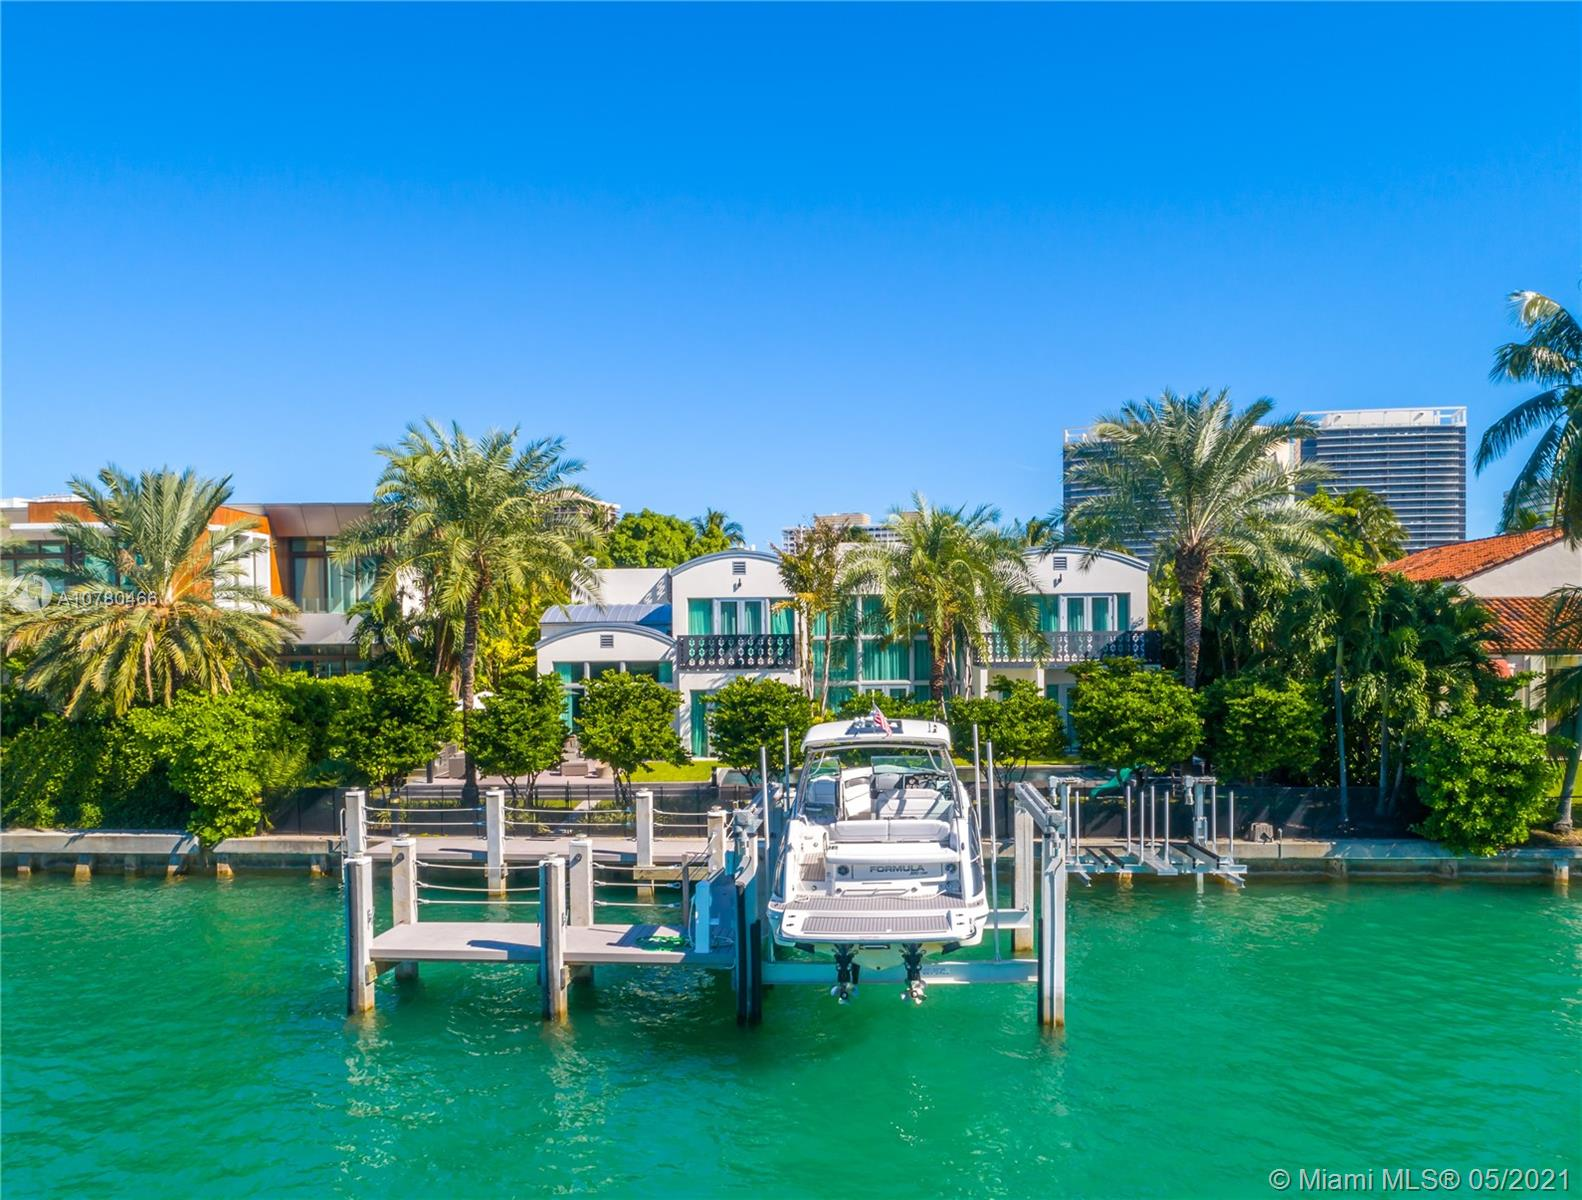 """Unique contemporary waterfront home located in at the prestigious Bal Harbour Village with only 31 Homes.The nine-bedroom, 10.5-bathroom mansion inside the  upscale gated community.Situated on 21,225 square feet, the home boasts 100 feet of water frontage w/boat lift & dock.This stunning home is furnished & appointed w/the finest amenities. Built w/solid concrete & impact glass thru-out. Also features a """"Smart system,"""" 3 car garage, rooftop observation deck, infinity pool, triple staircases, high ceilings, gourmet kitchen w/double appliances,outdoor terraces off every room w/sweeping water views. Architecturally distinctive on exclusive 24 hrs PRIVATE gated community. Easy Ocean access with no fixed bridges. Real Sellers."""